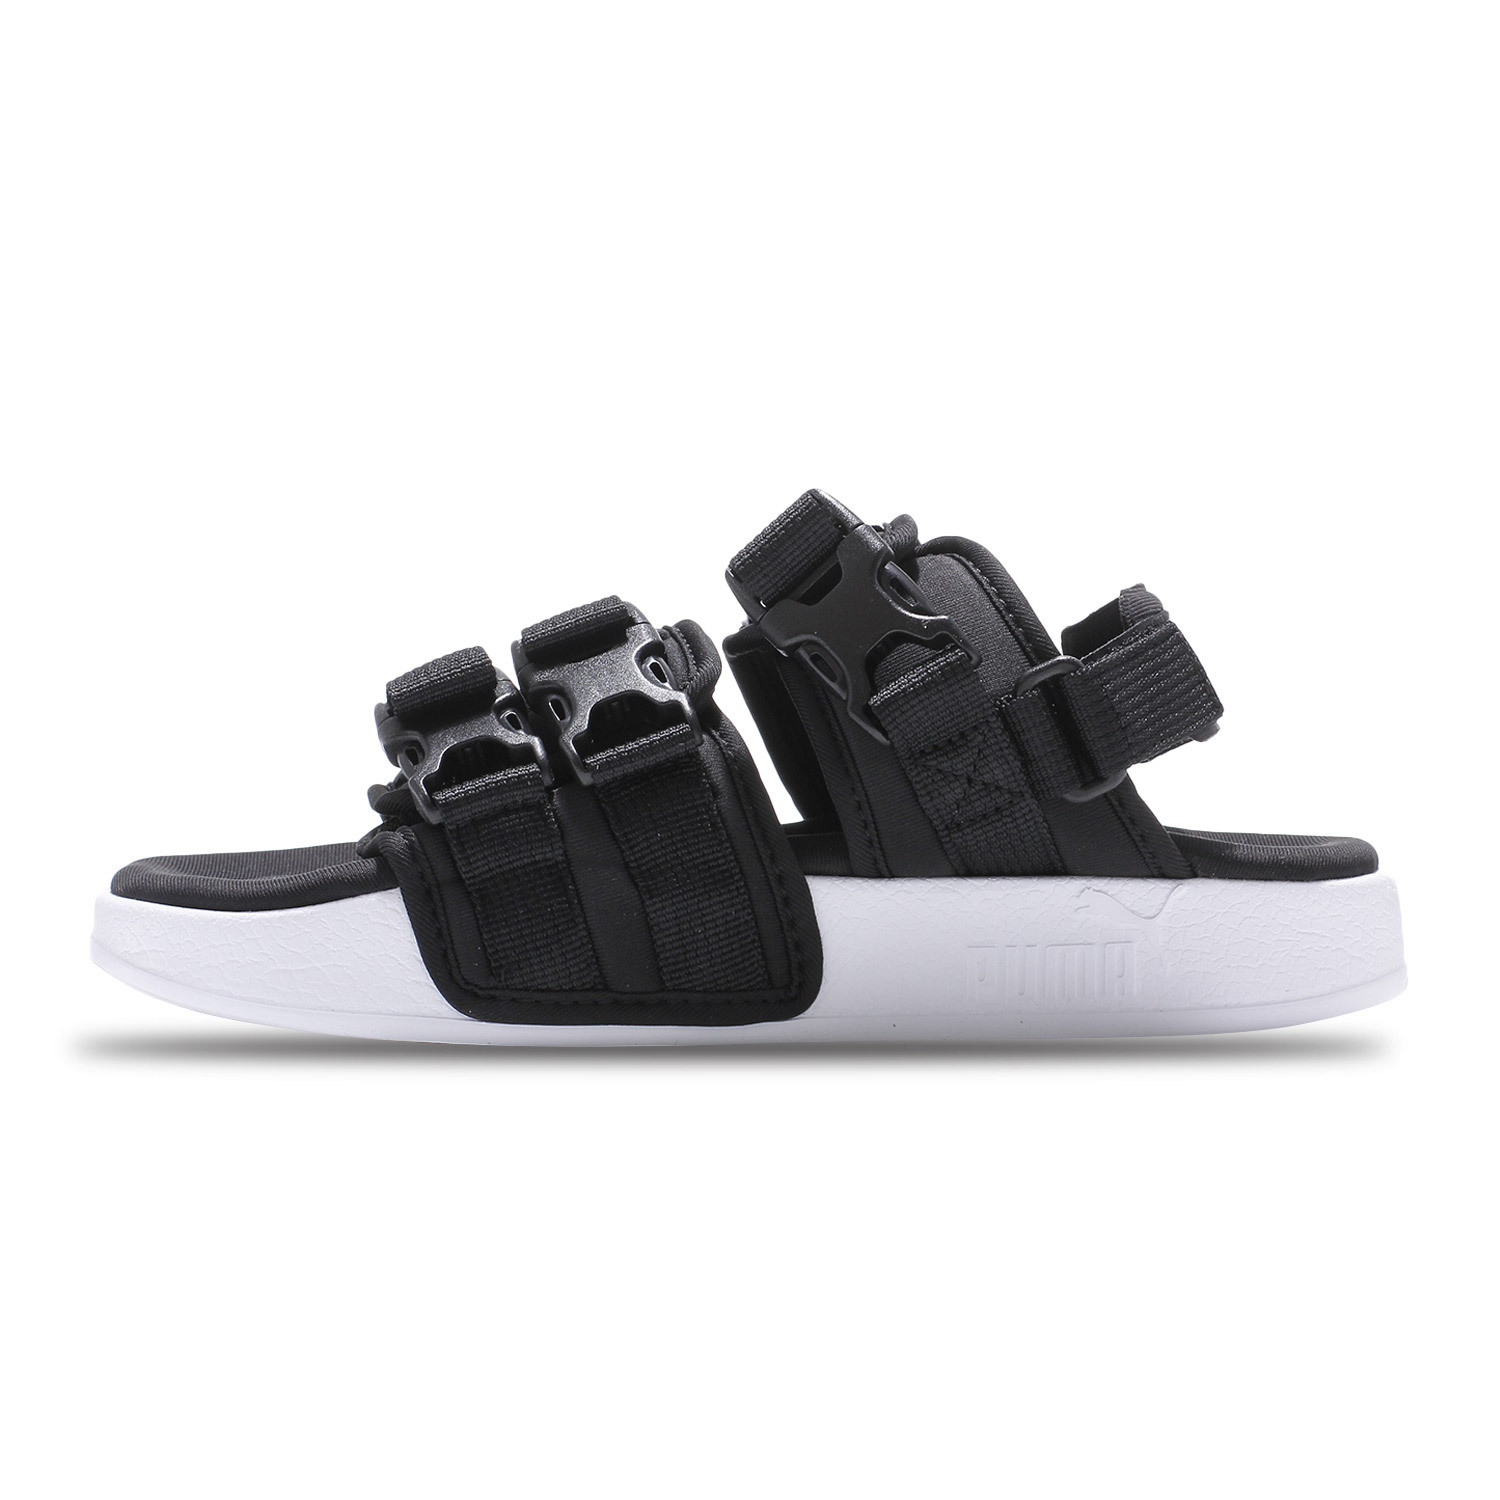 43dcbb907871 Puma Leadcat YLM black and white Velcro men and women sports and leisure  beach sandals 365630-01-06